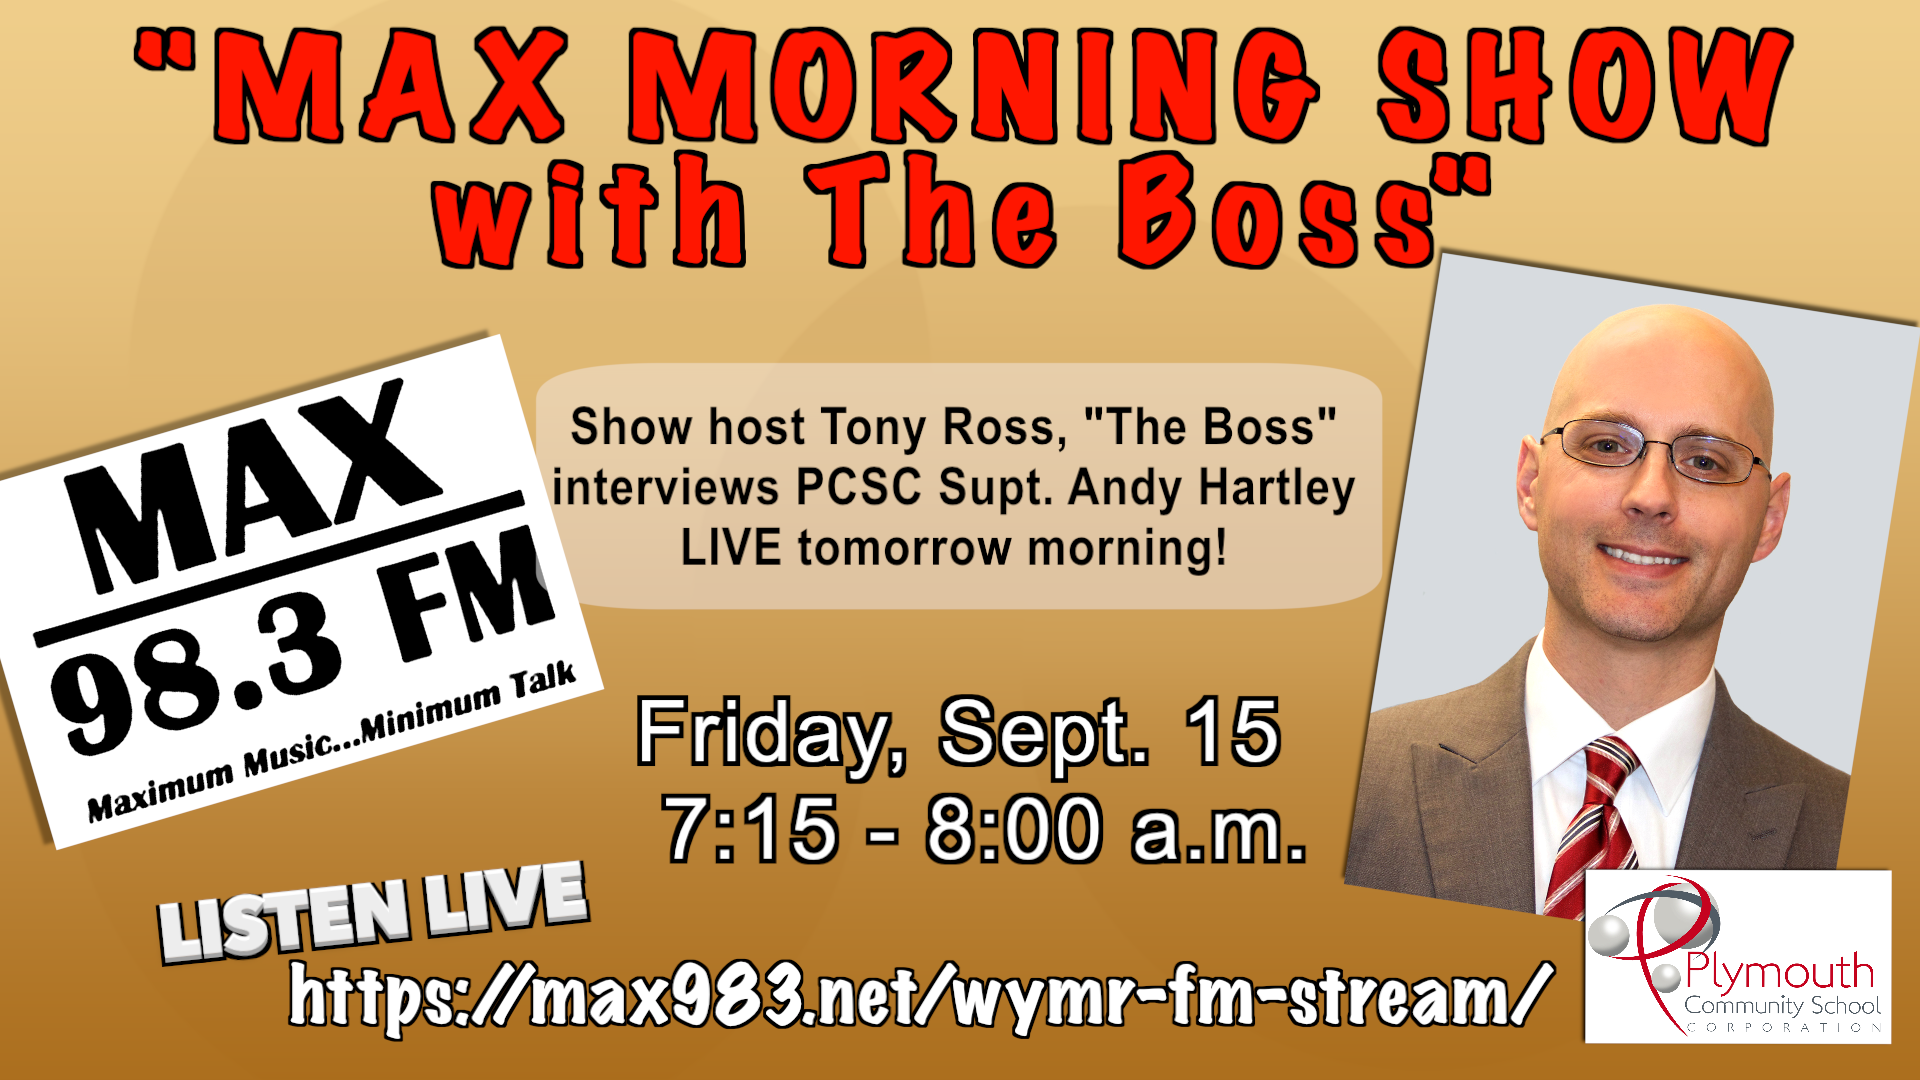 Andy Hartley on Max 98.3 FM on Friday, September 15 from 7:15-8:00 a.m.